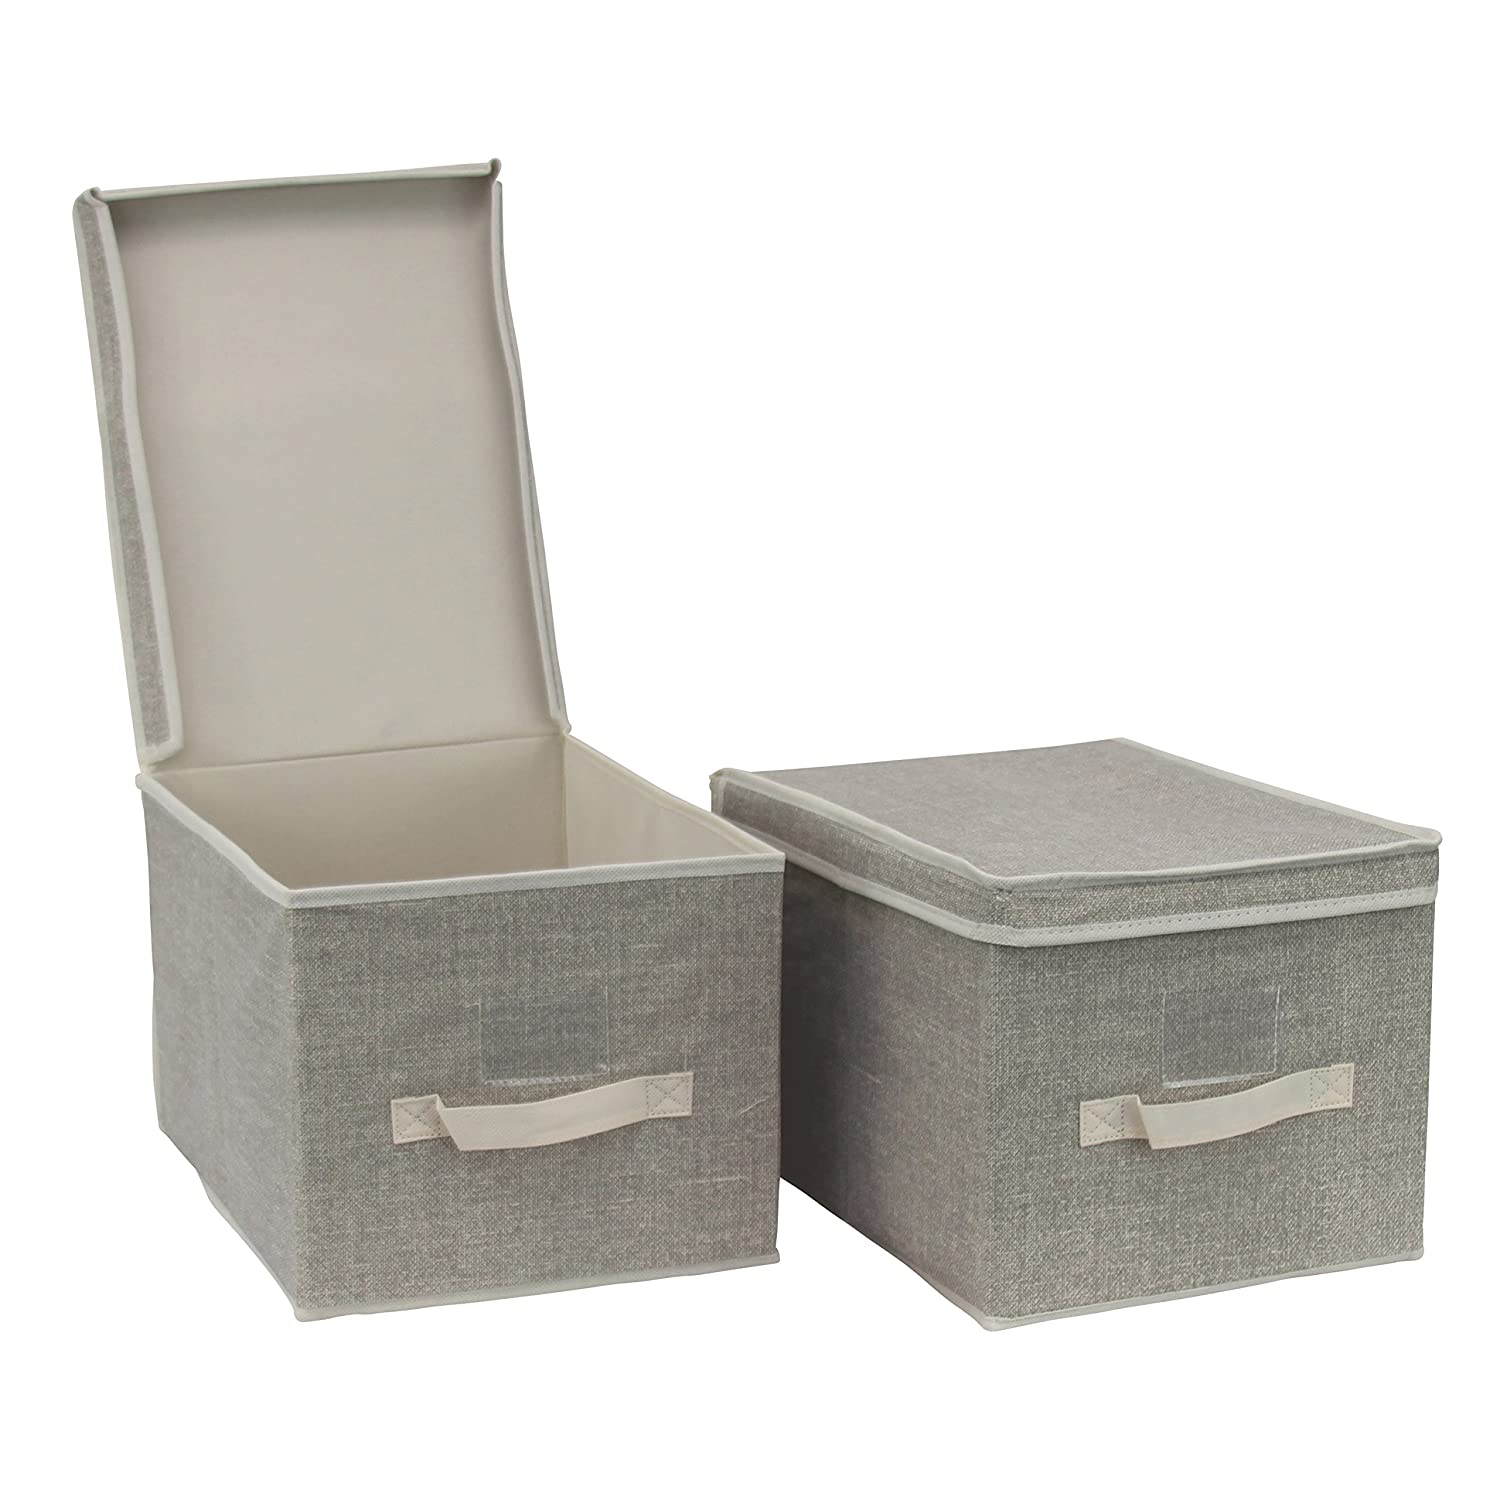 Wardrobe organiser storage box, collapsible with lid and label holder, pack of 2, Large